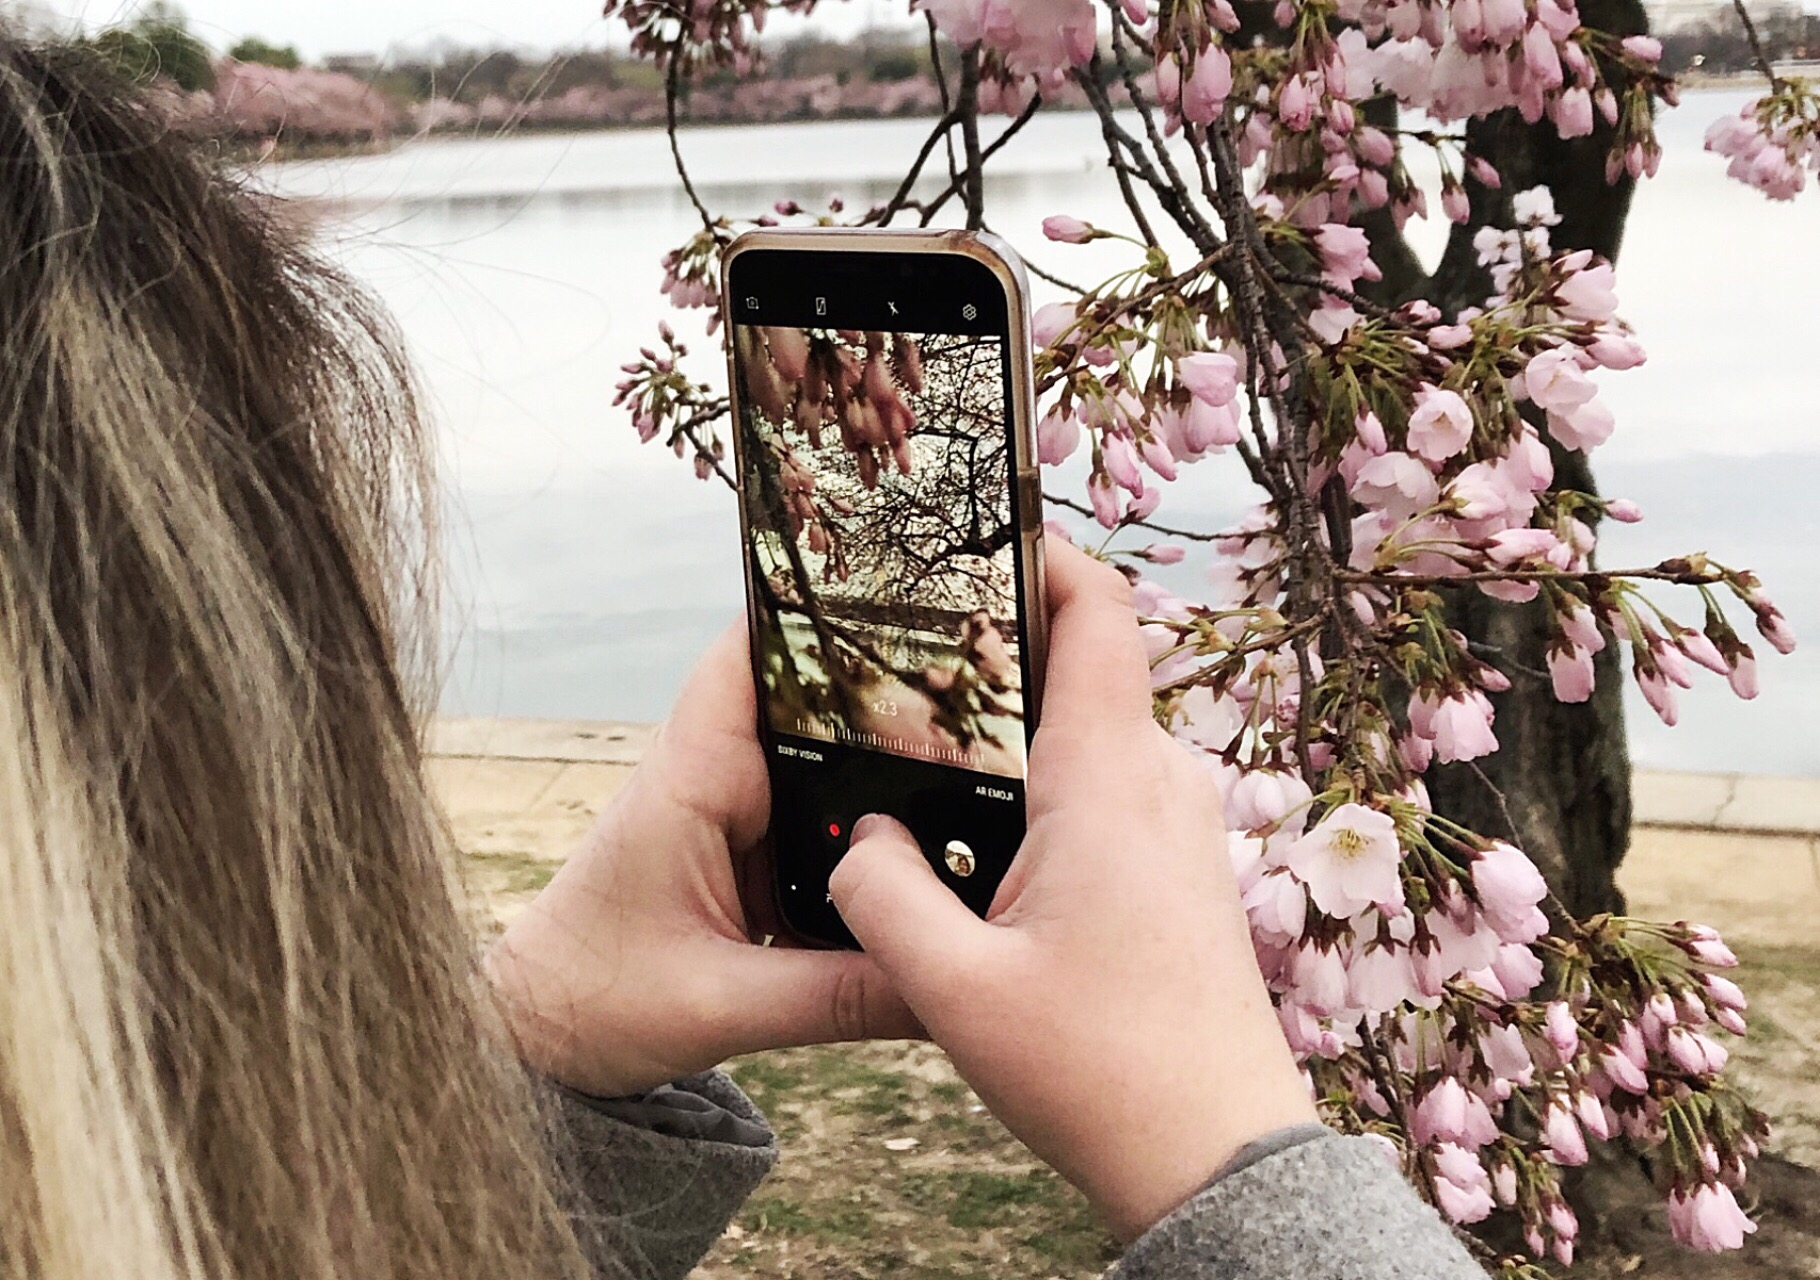 Brittany-iphone-cherry-blossoms